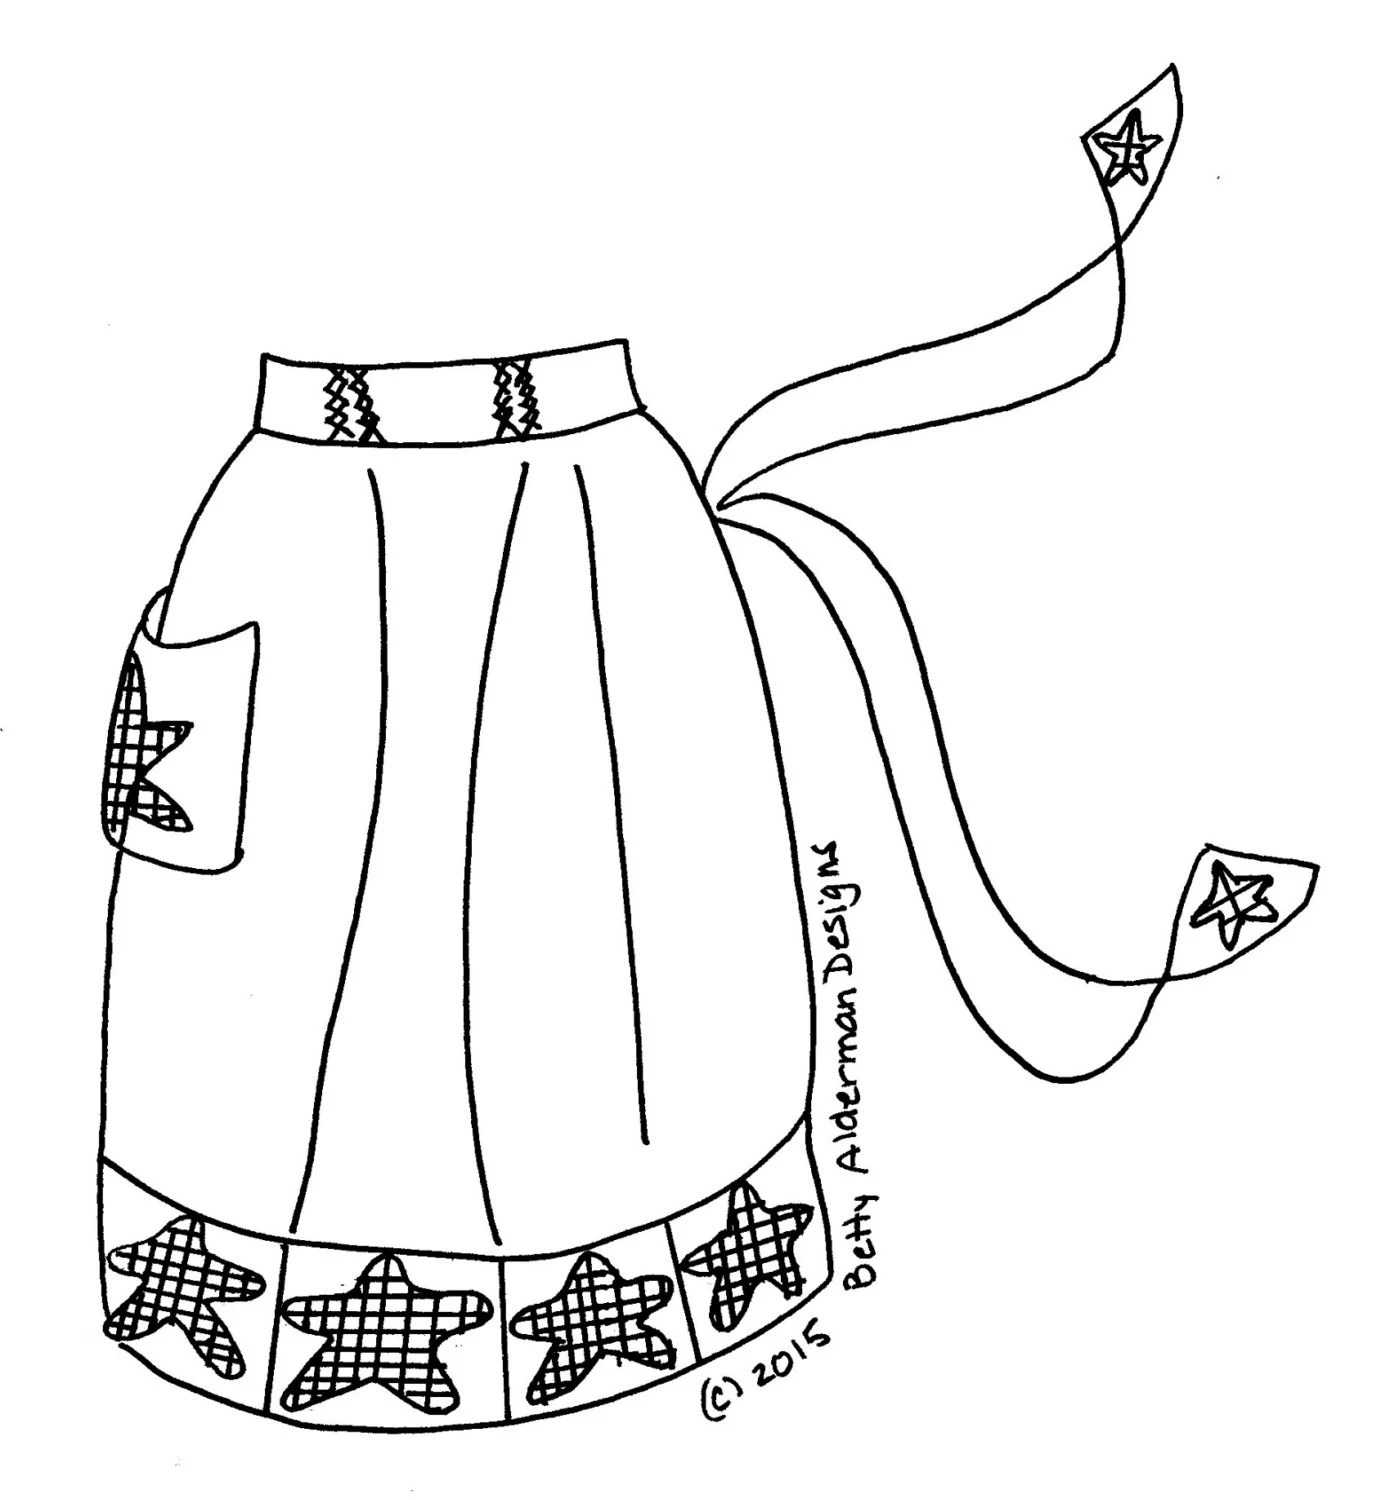 Redwork Bluework Hand Embroidery Pattern, Vintage Apron